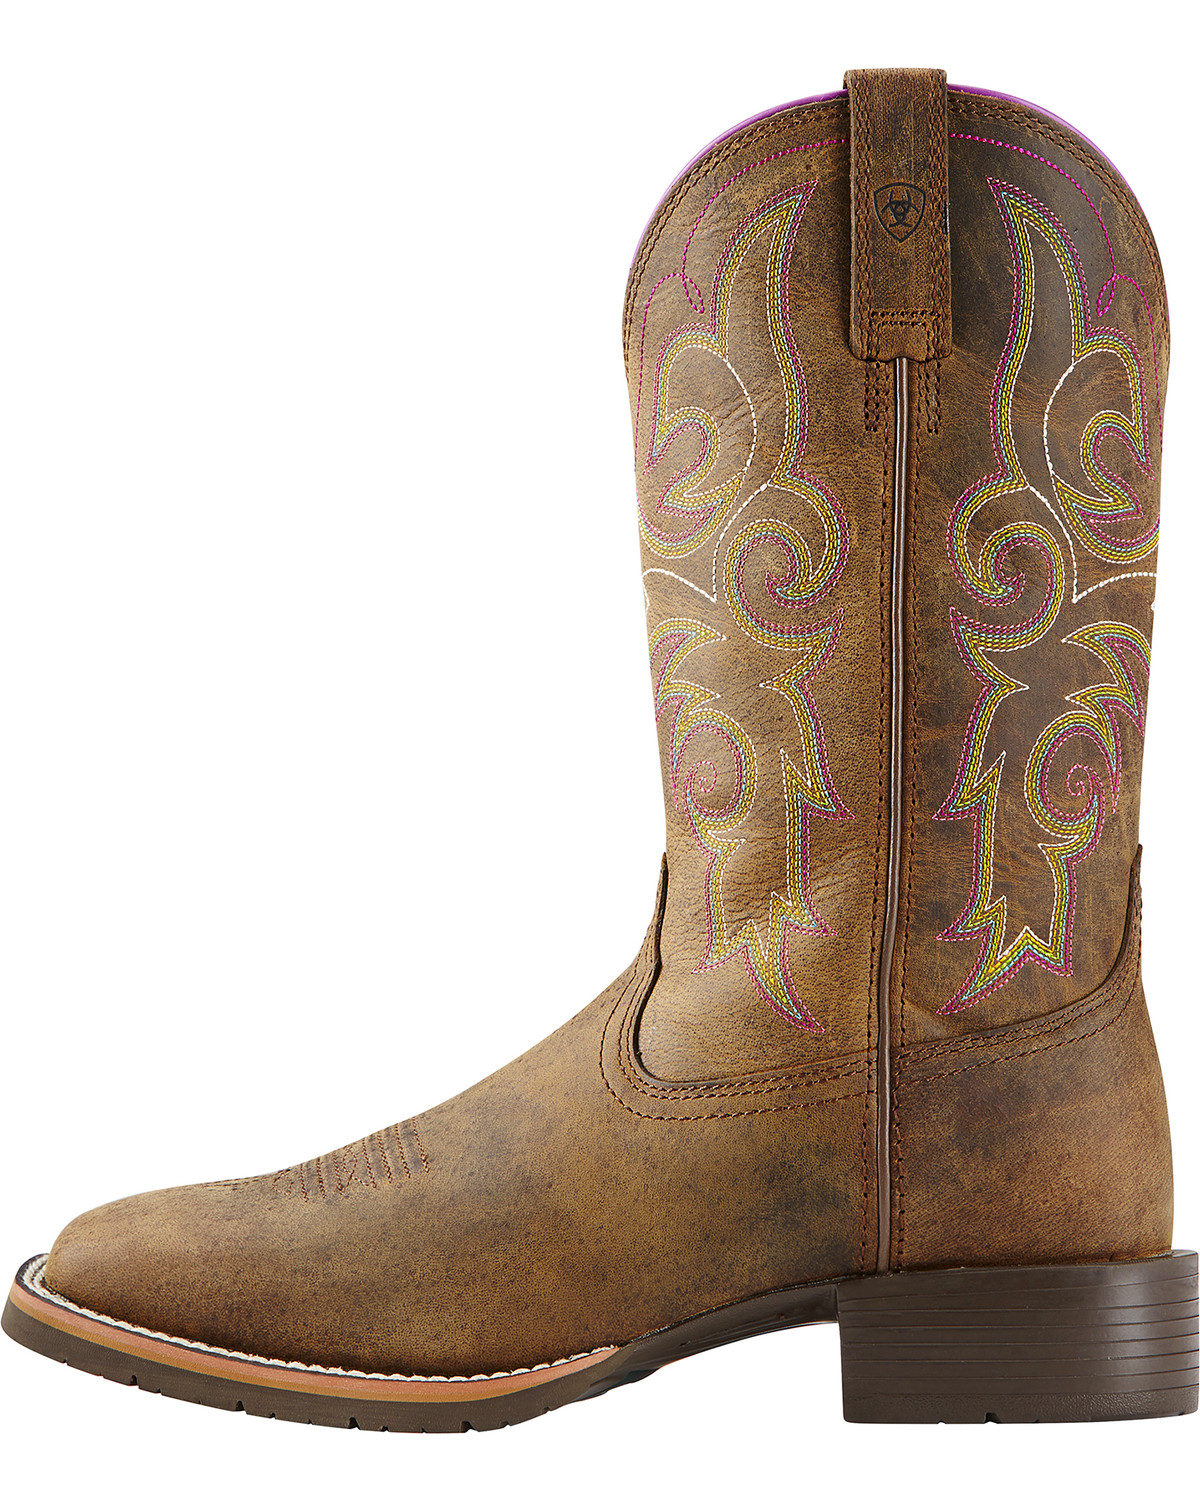 Ariat Women's Hybrid Rancher Cowgirl Boots - Square Toe - Country ...